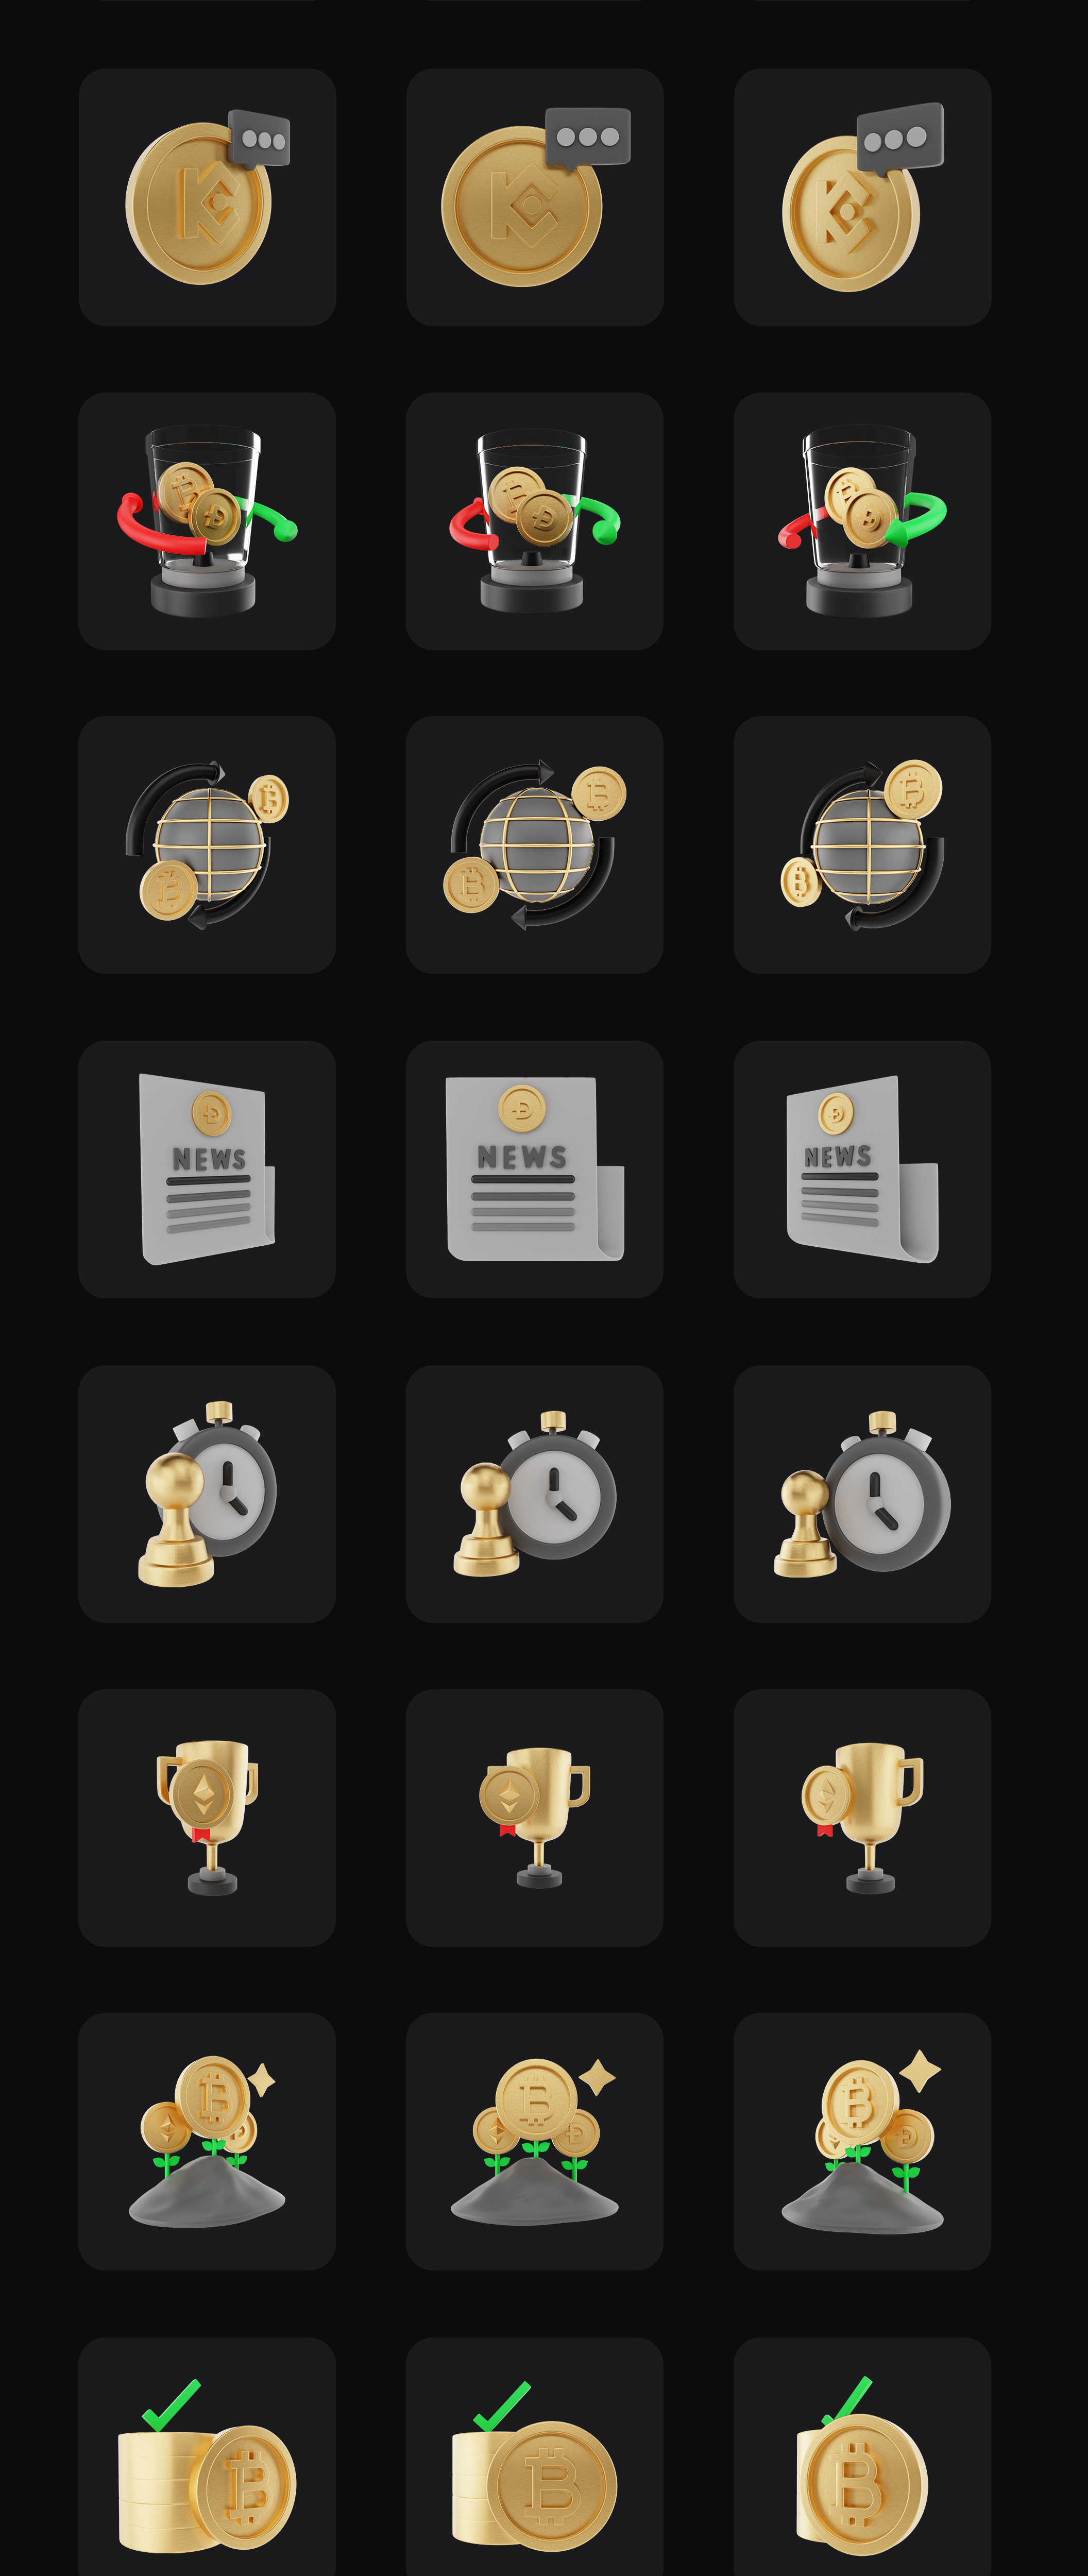 Premium 3D Icon Pack for Cryptocurrency   BlockGold Pro   Iqonic Design premium 3d icon pack for cryptocurrency BlackGold Pro 3D 4th full preview imagelong preview 1628934570001